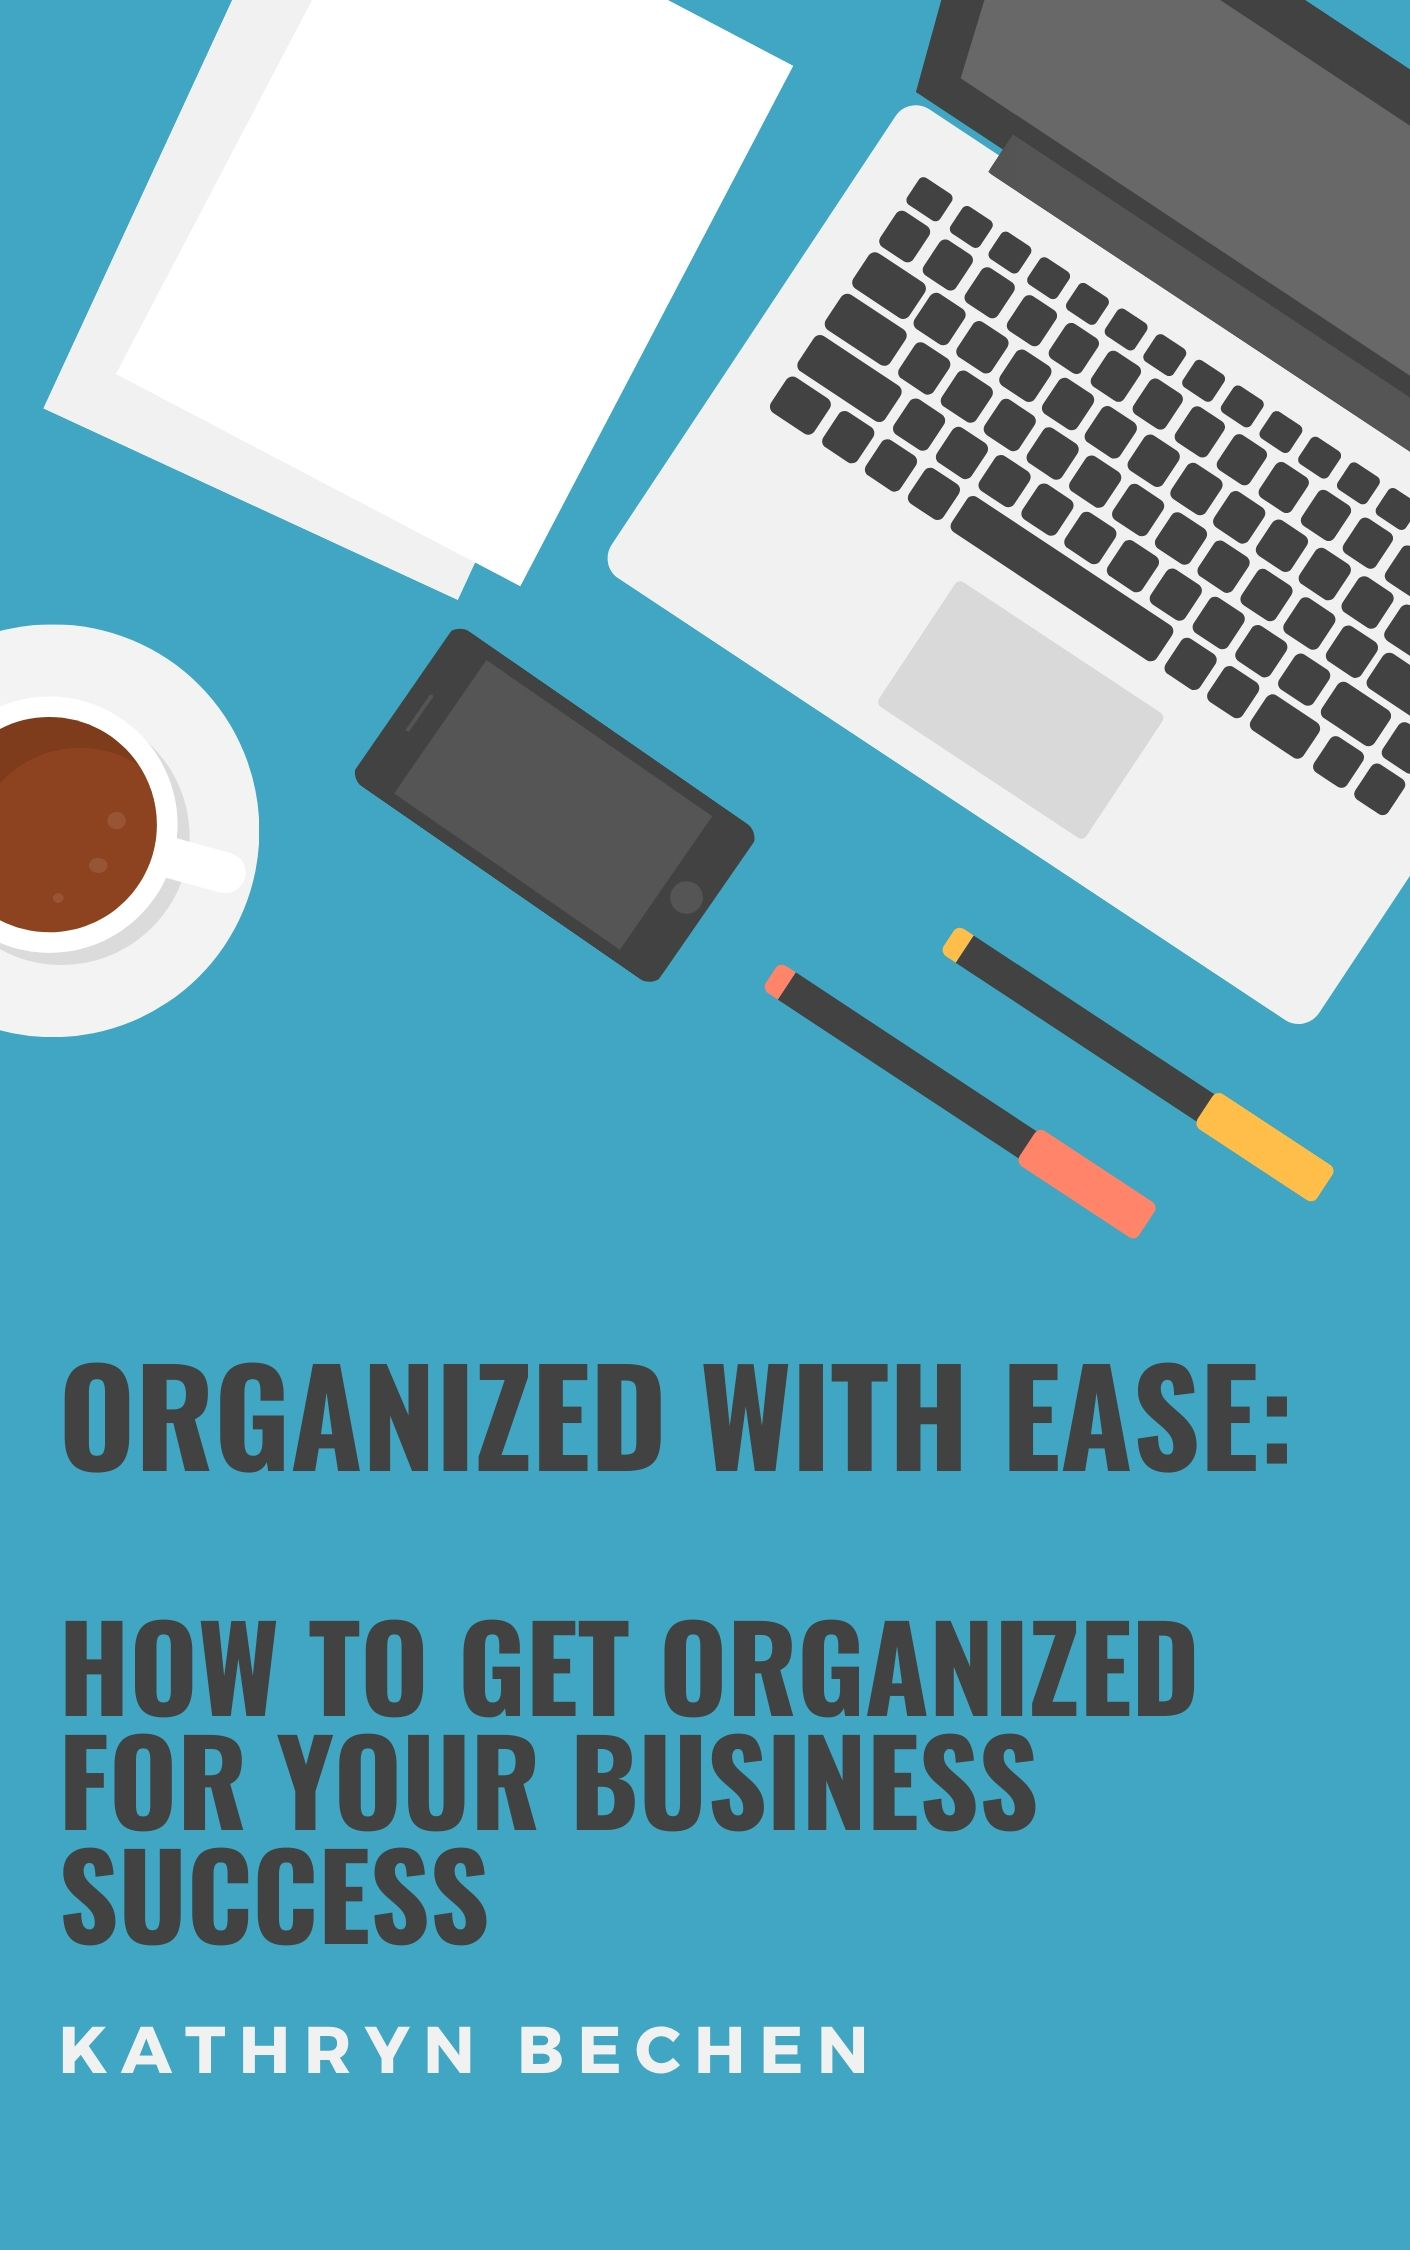 Organized With Ease Kathryn Bechen